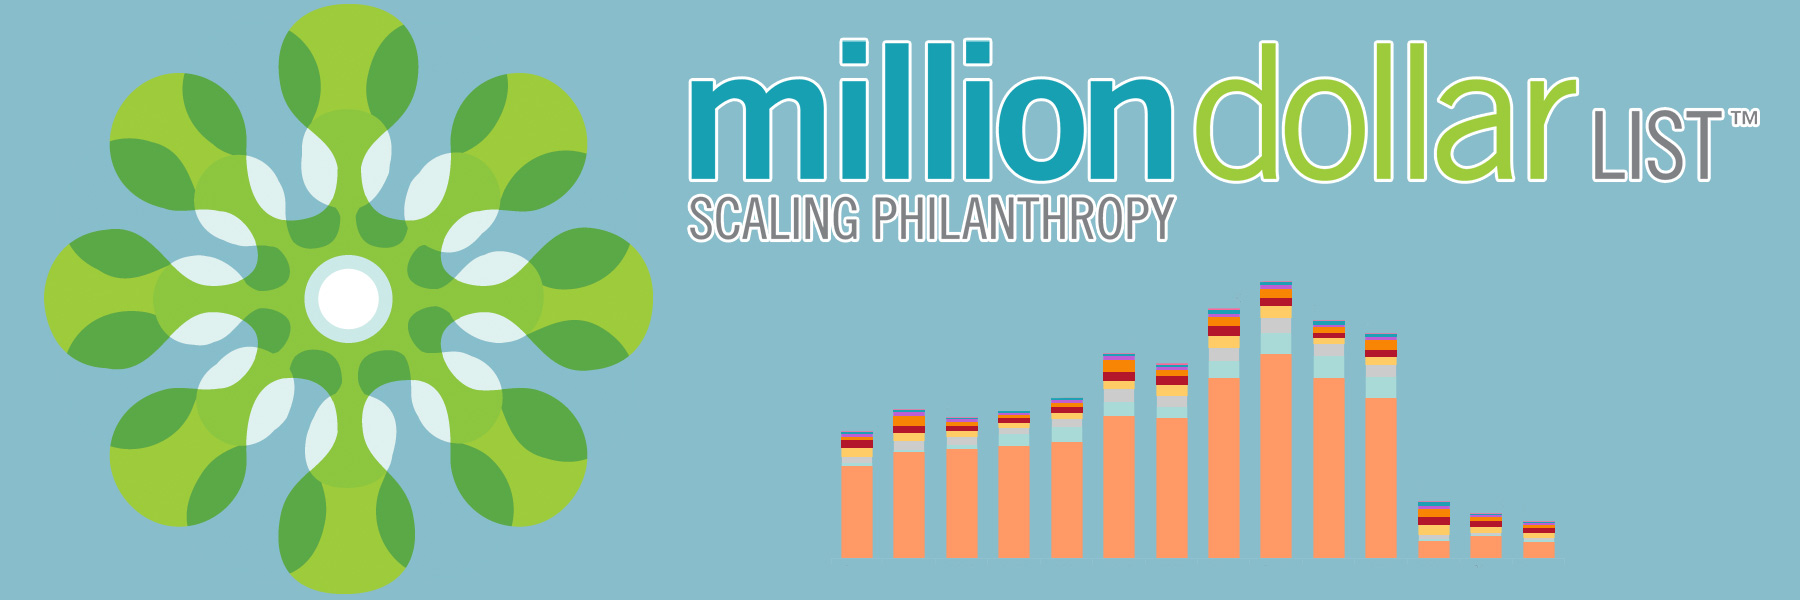 Indiana University Lilly Family School of Philanthropy: Million Dollar List